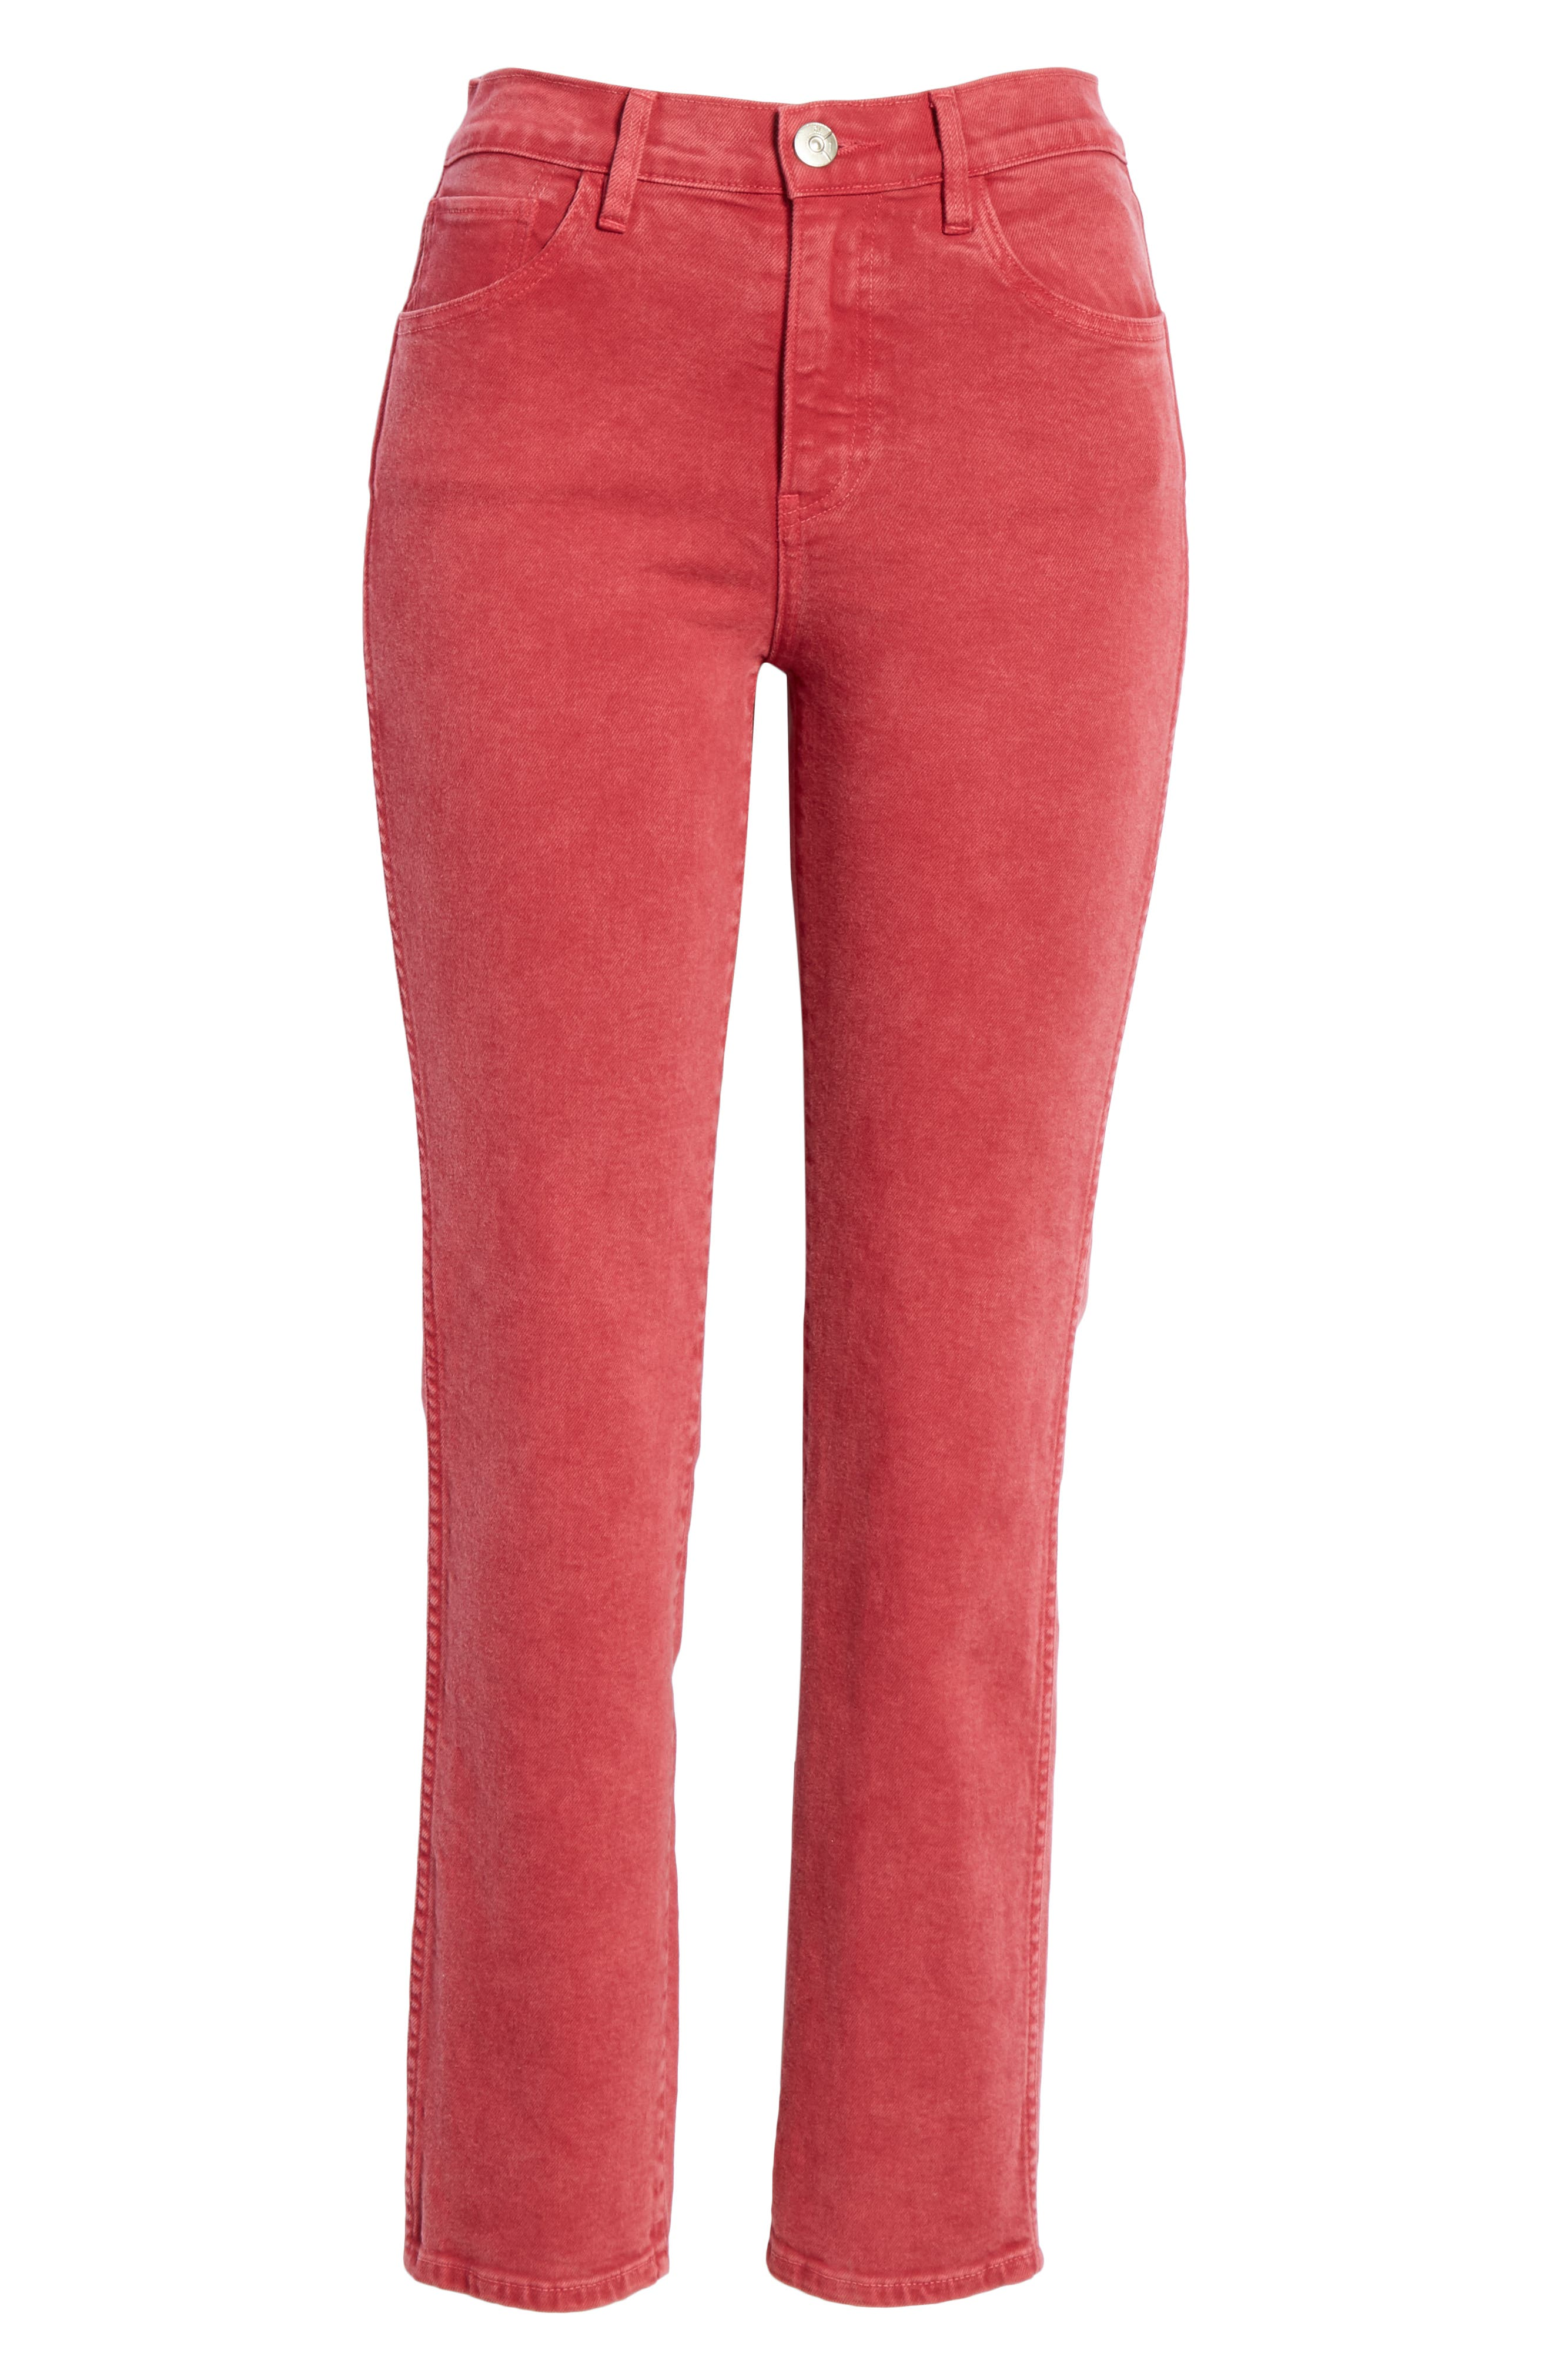 3X1 NYC,                             Stevie Straight Leg Jeans,                             Alternate thumbnail 6, color,                             MINERAL RUST RED